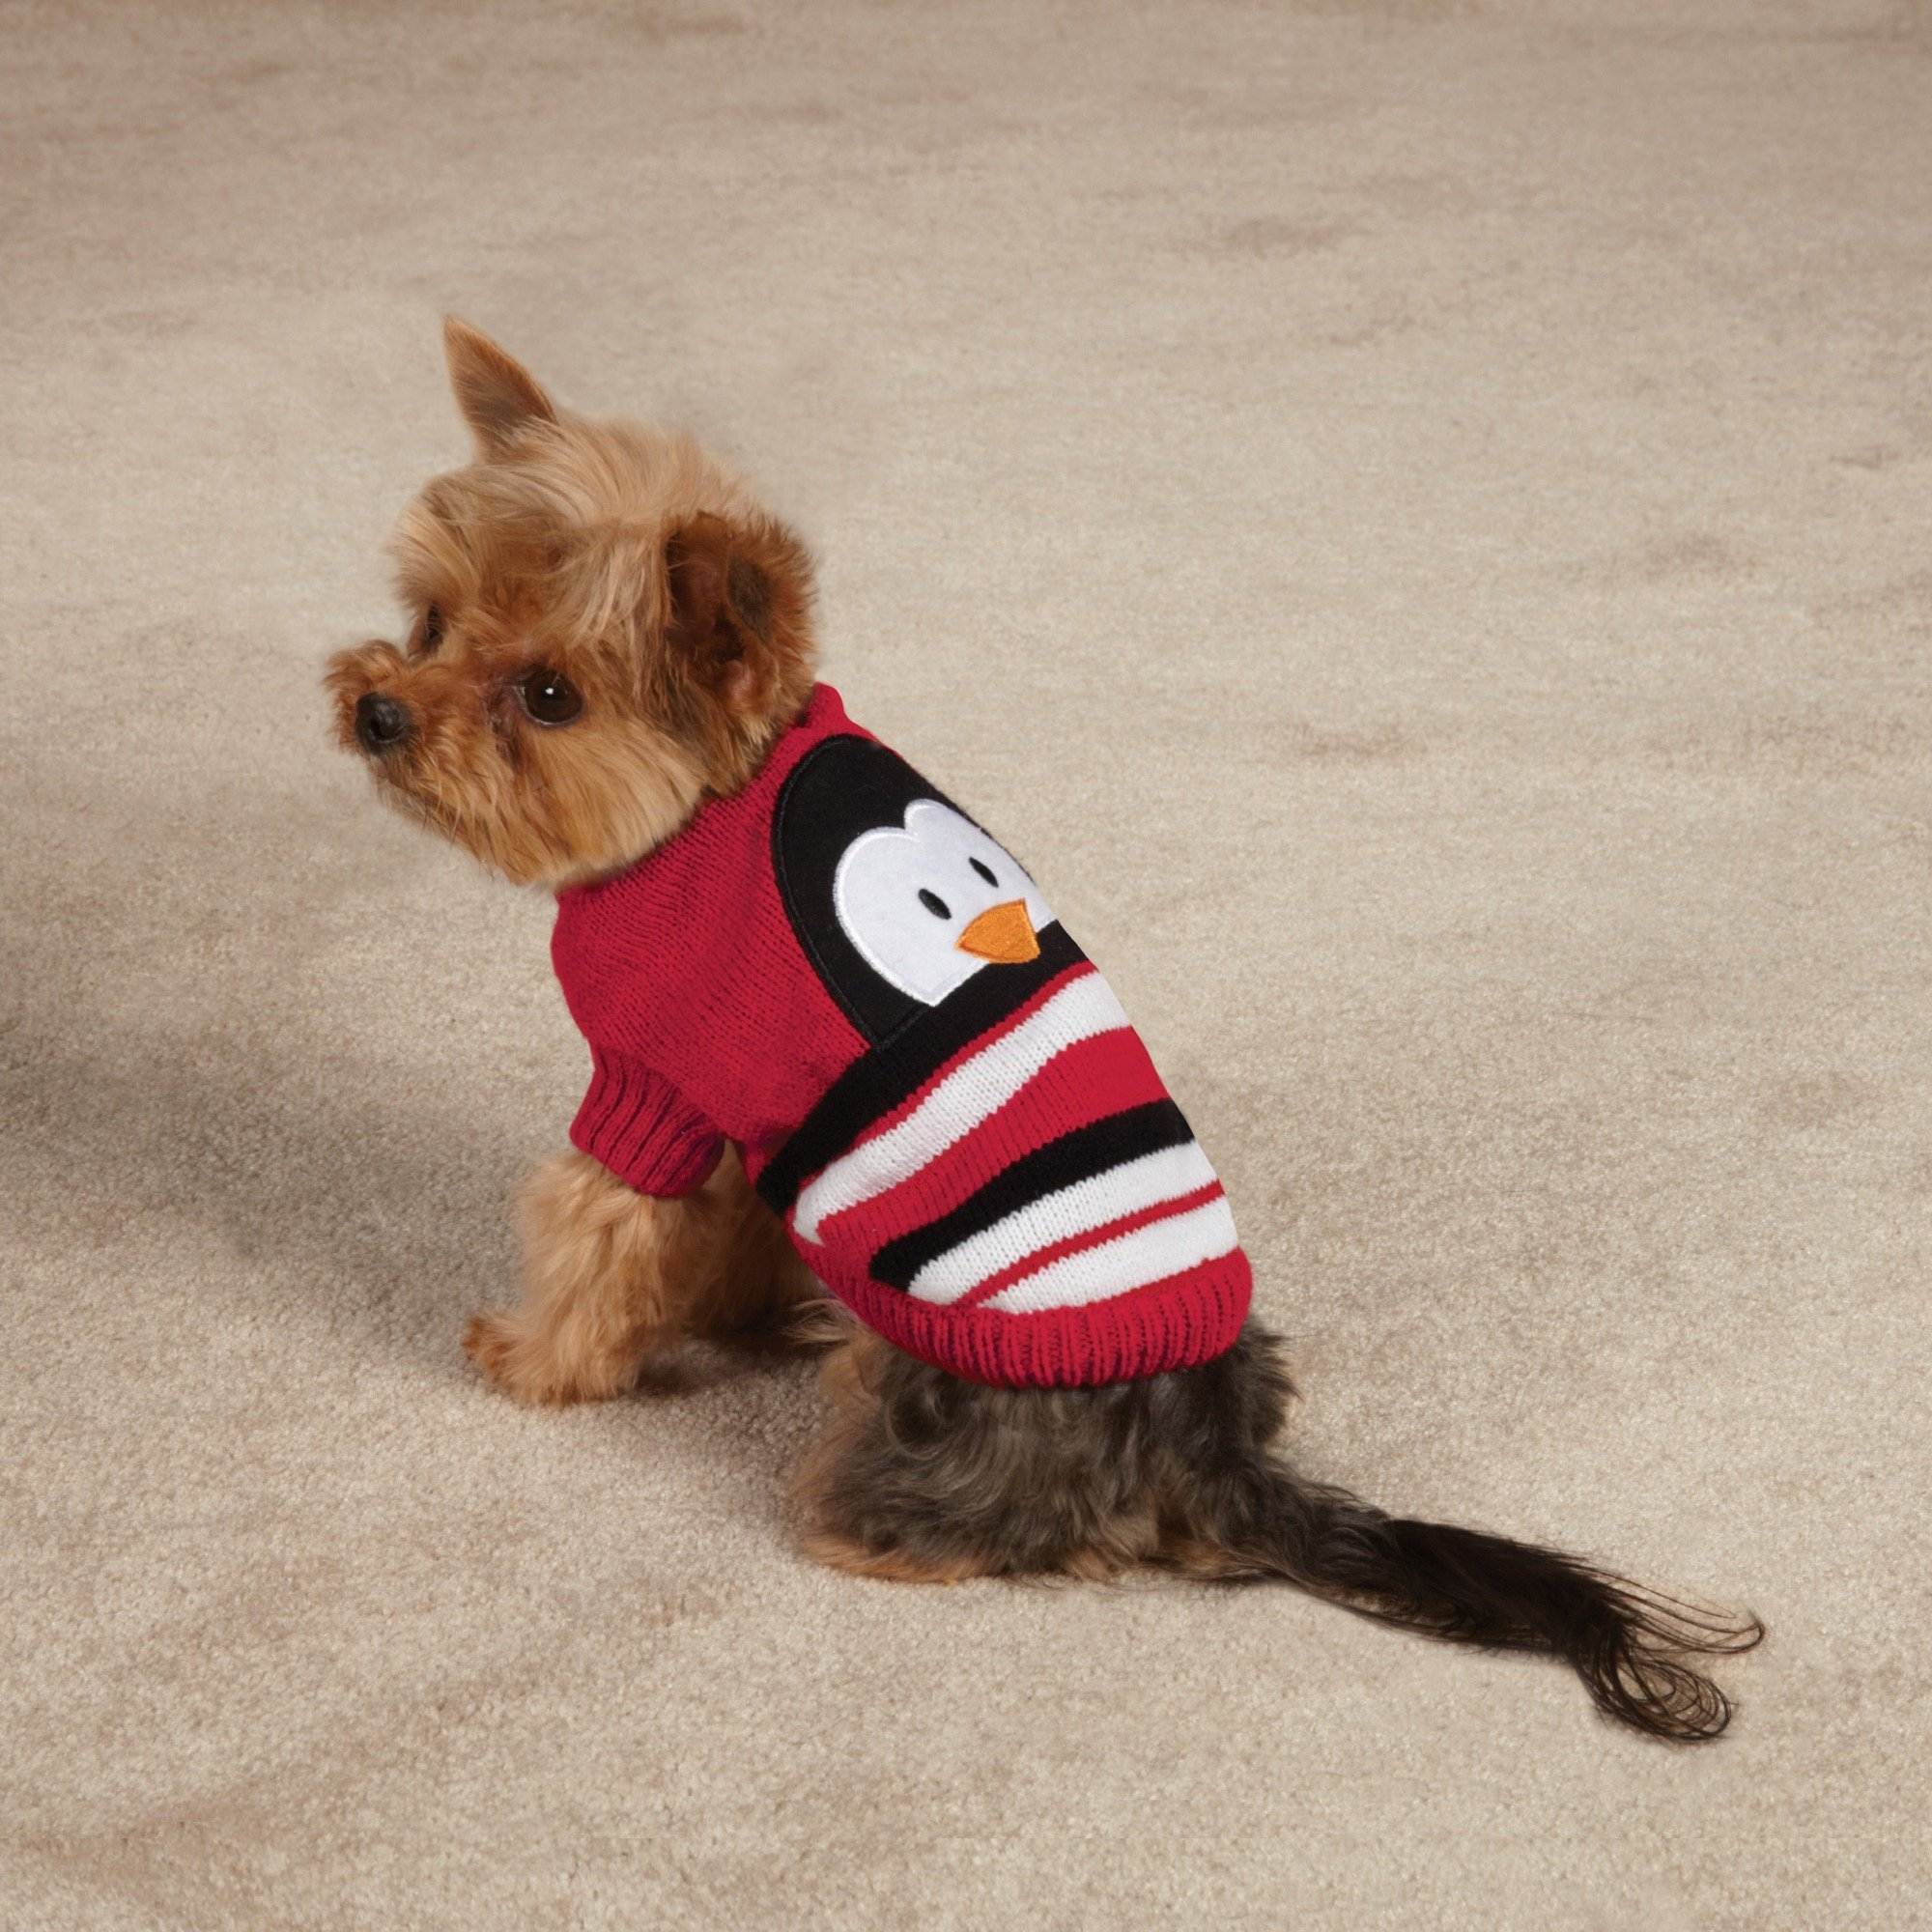 Zack & Zoey Piggy Back Pals Sweater and Hat Set for Dogs, 20'' Large, Penguin by Zack & Zoey (Image #2)